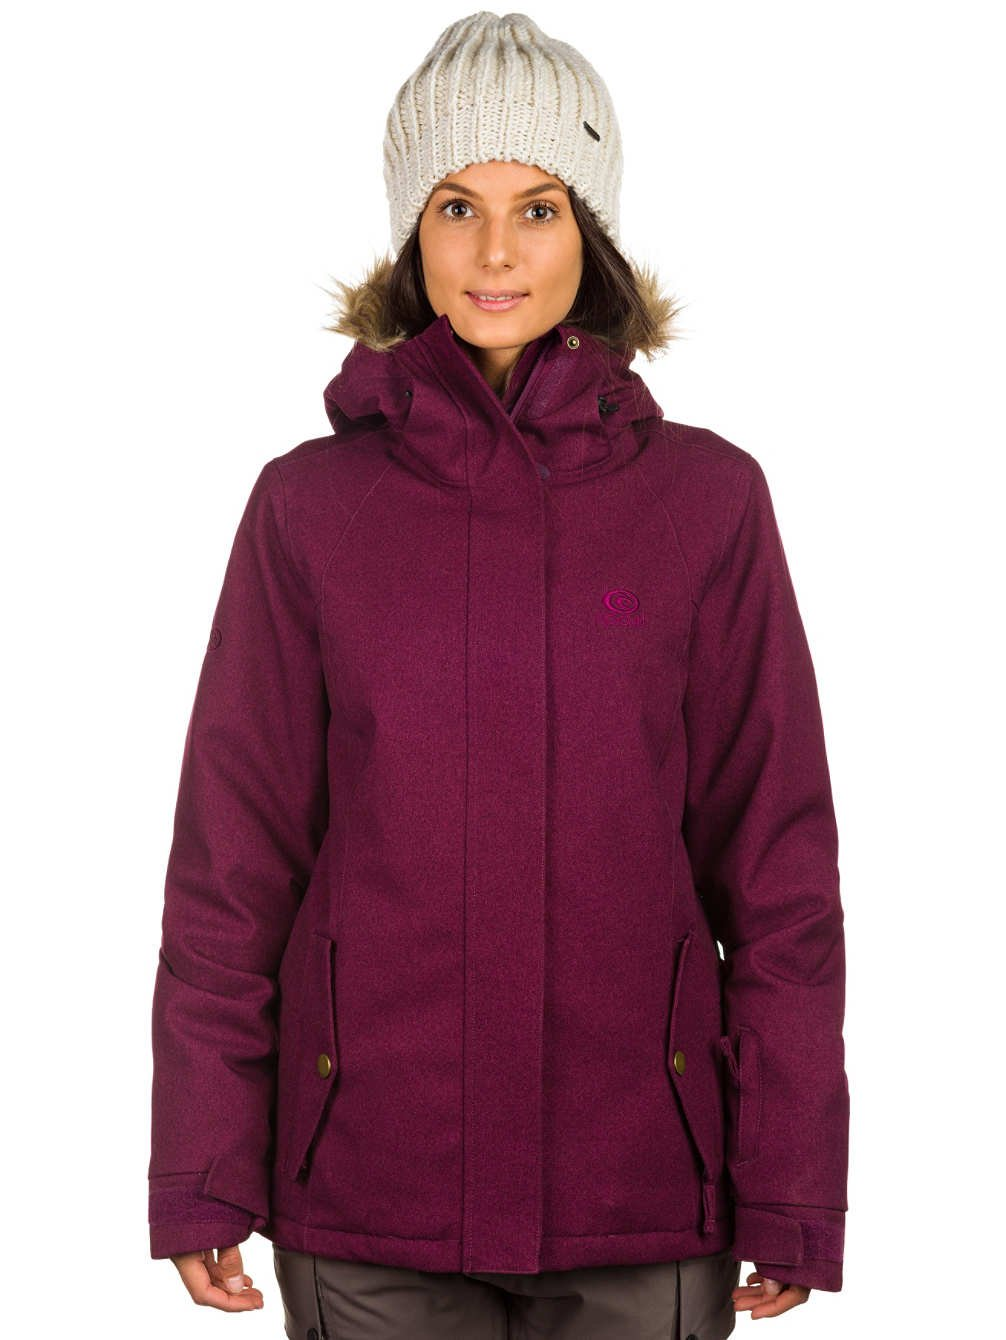 Damen Snowboard Jacke Rip Curl Betty Fancy Jacket